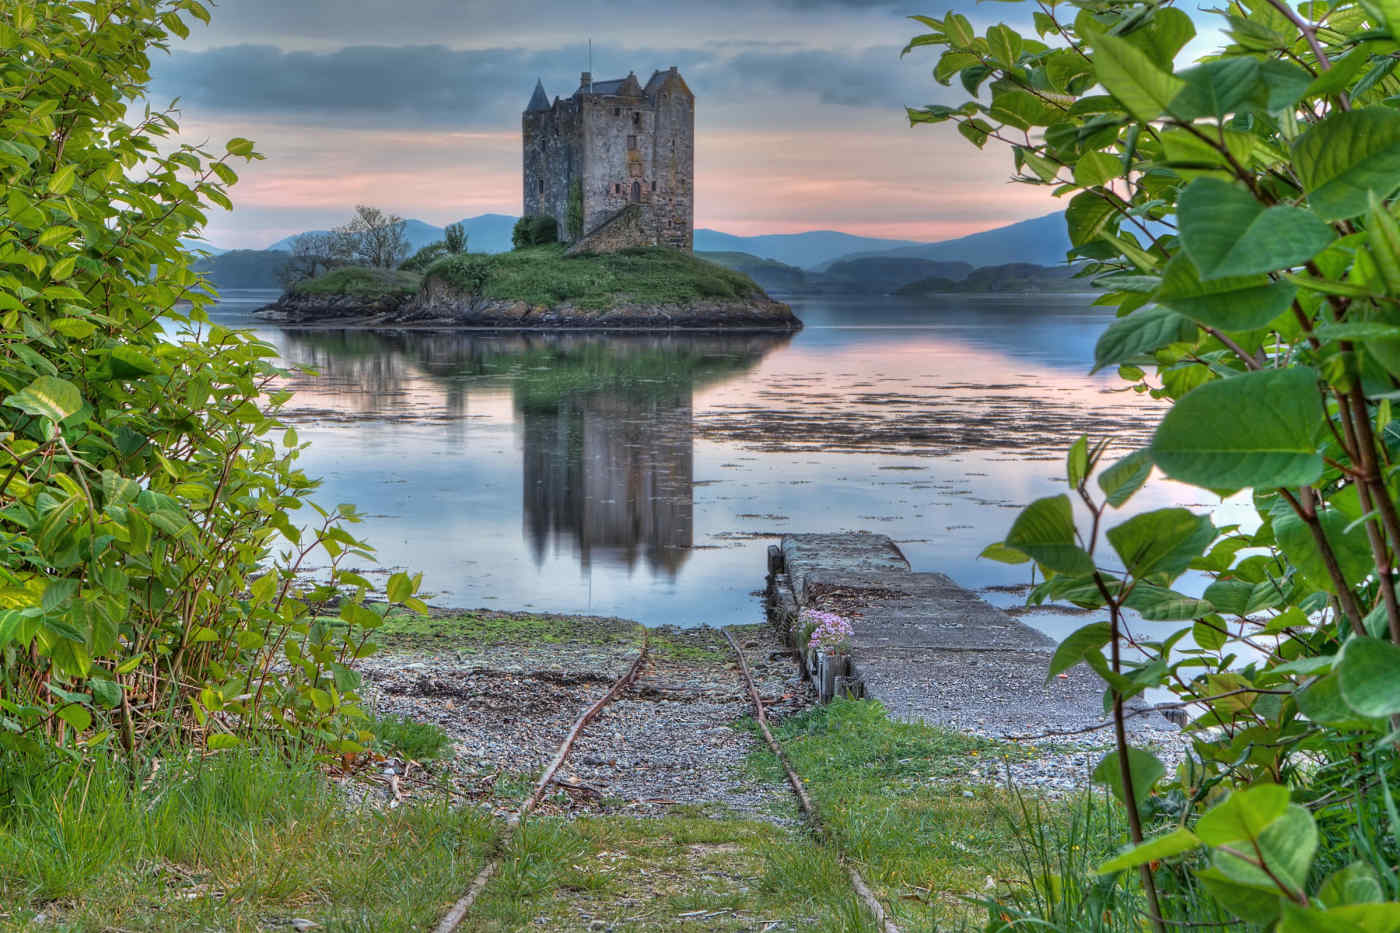 Stalker Castle in Appin, Scotland